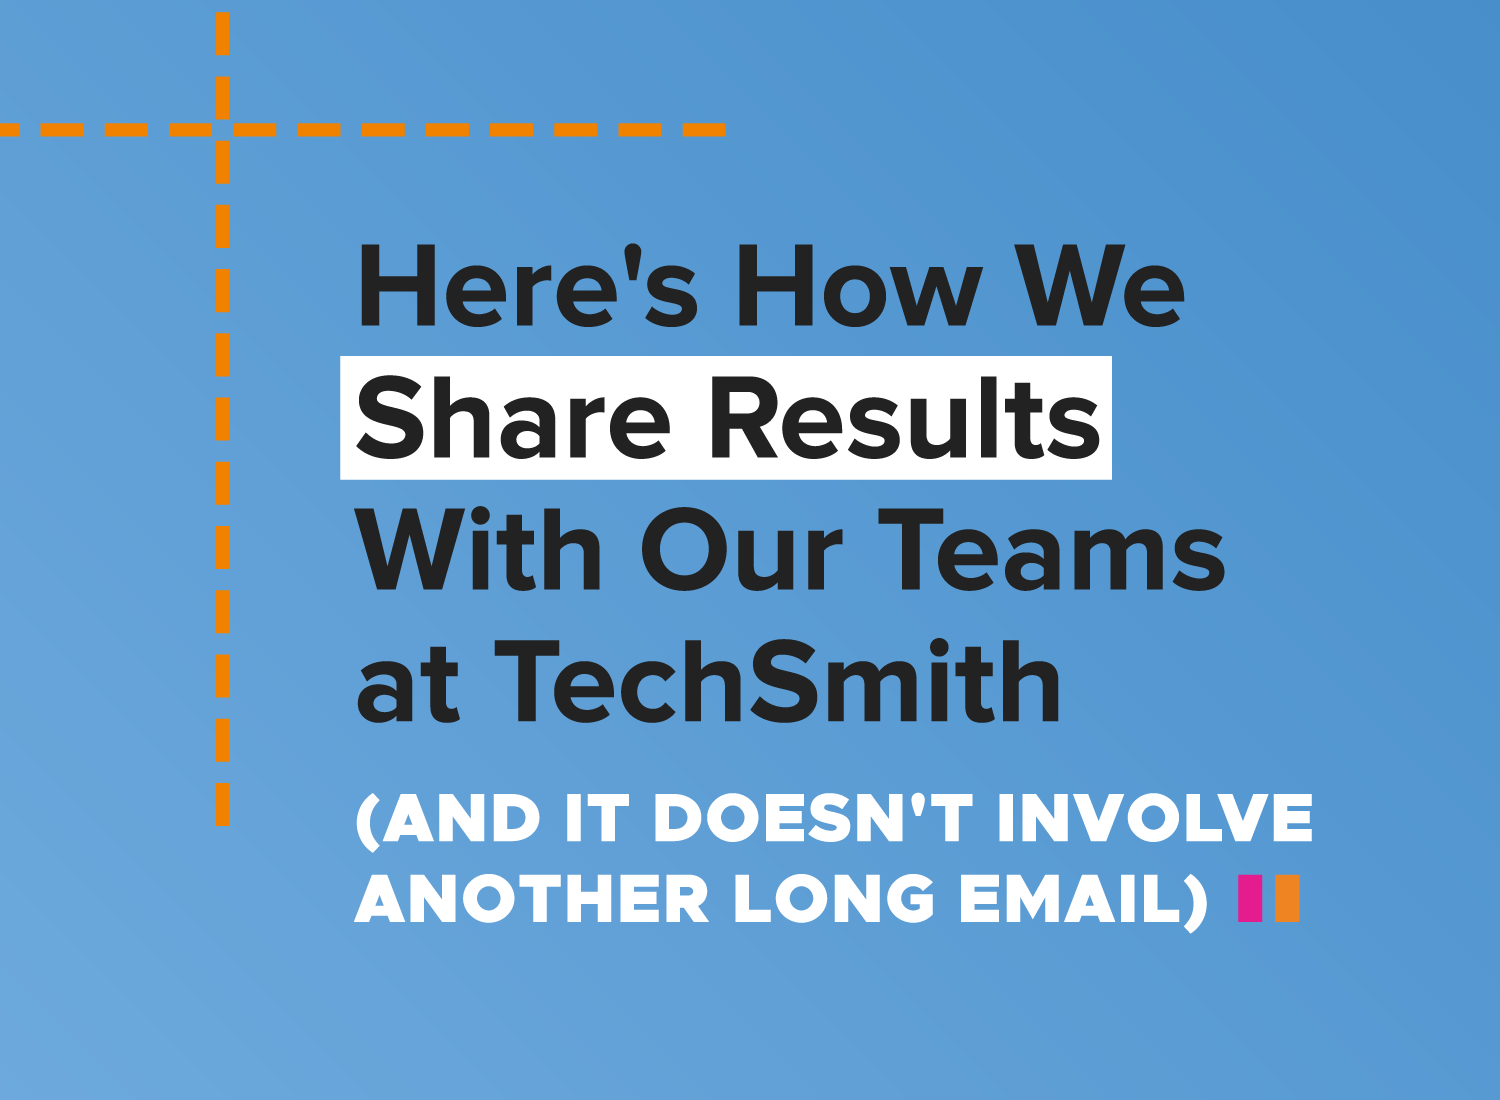 Here's How We Share Results With Our Teams at TechSmith